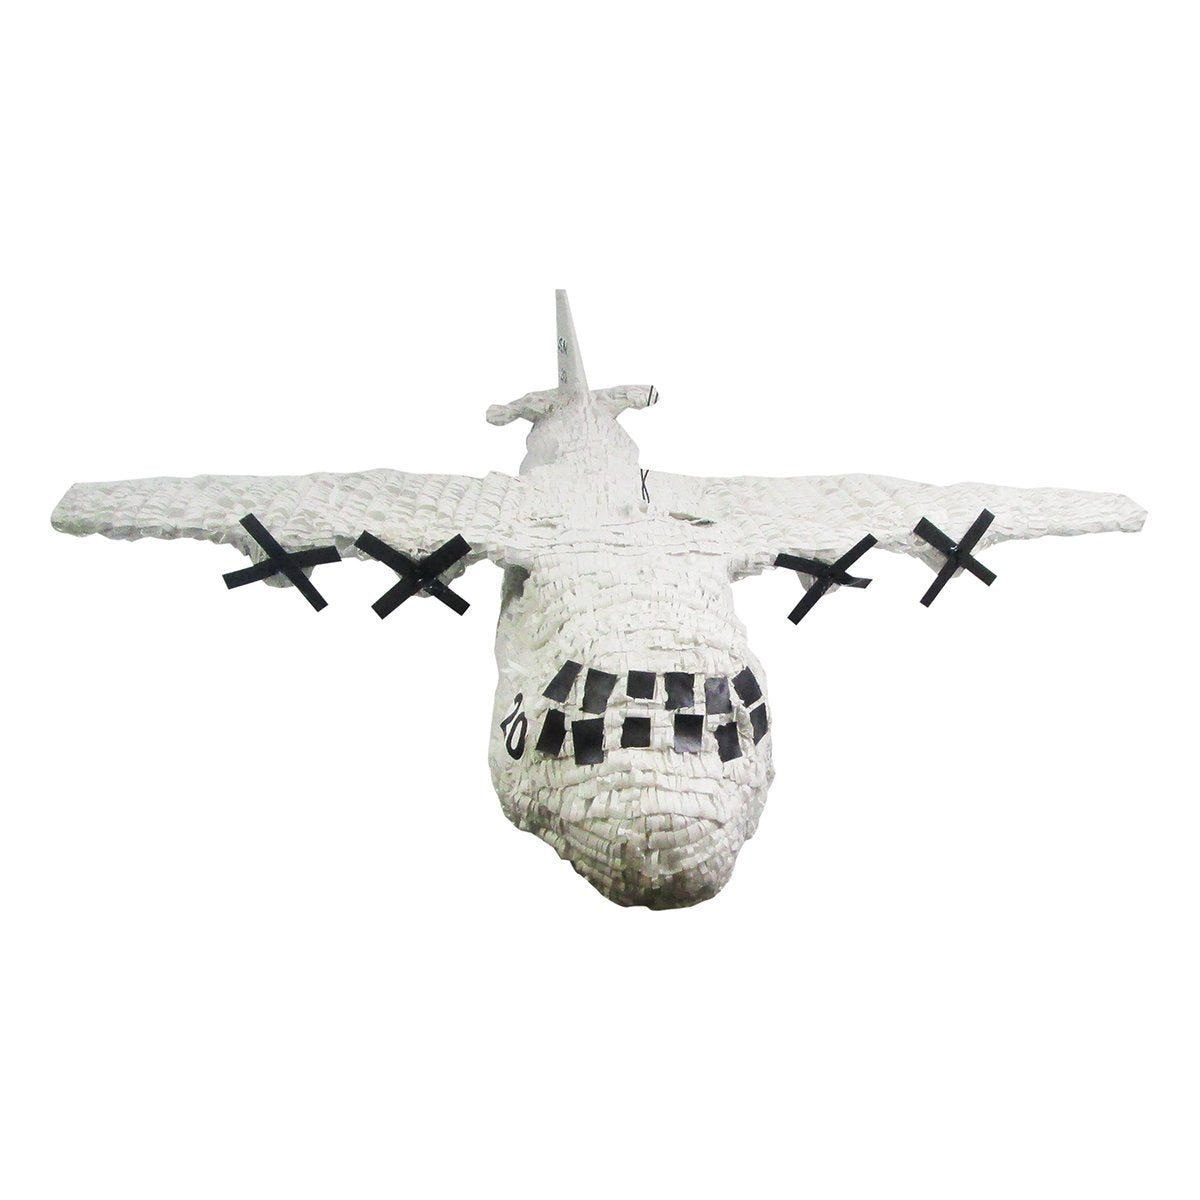 CUSTOM AIR PLANE PINATA